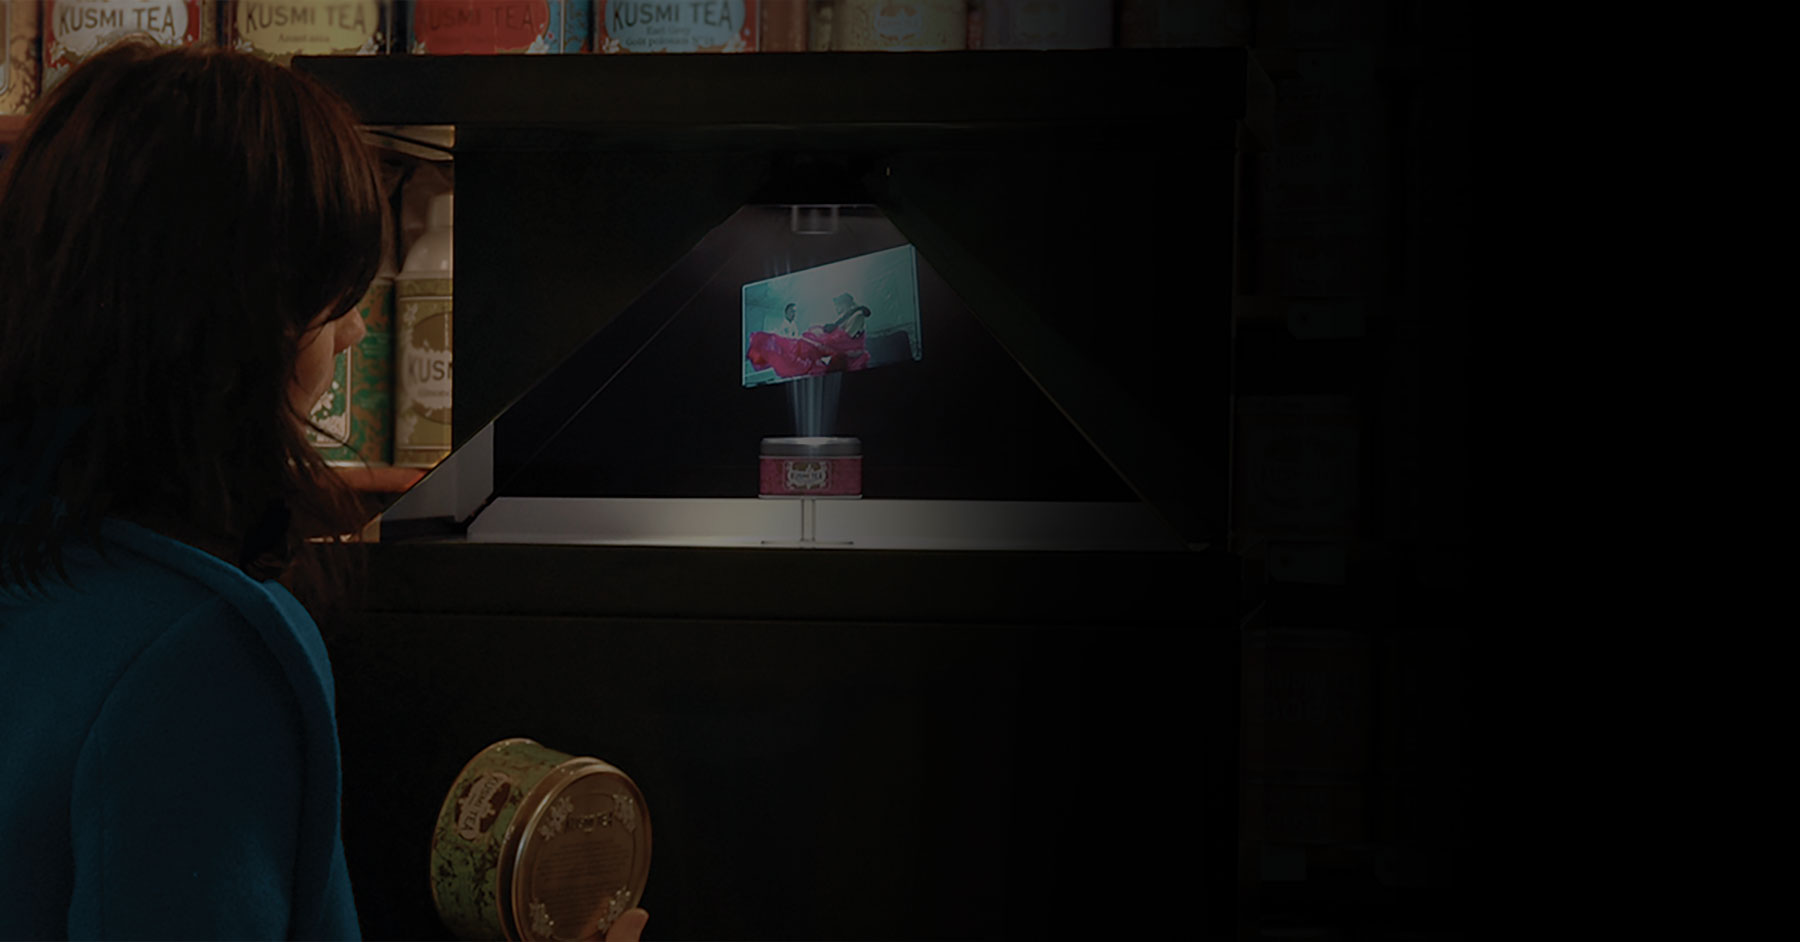 In-store marketing for Kusmi in a retail store using a 3D hologram